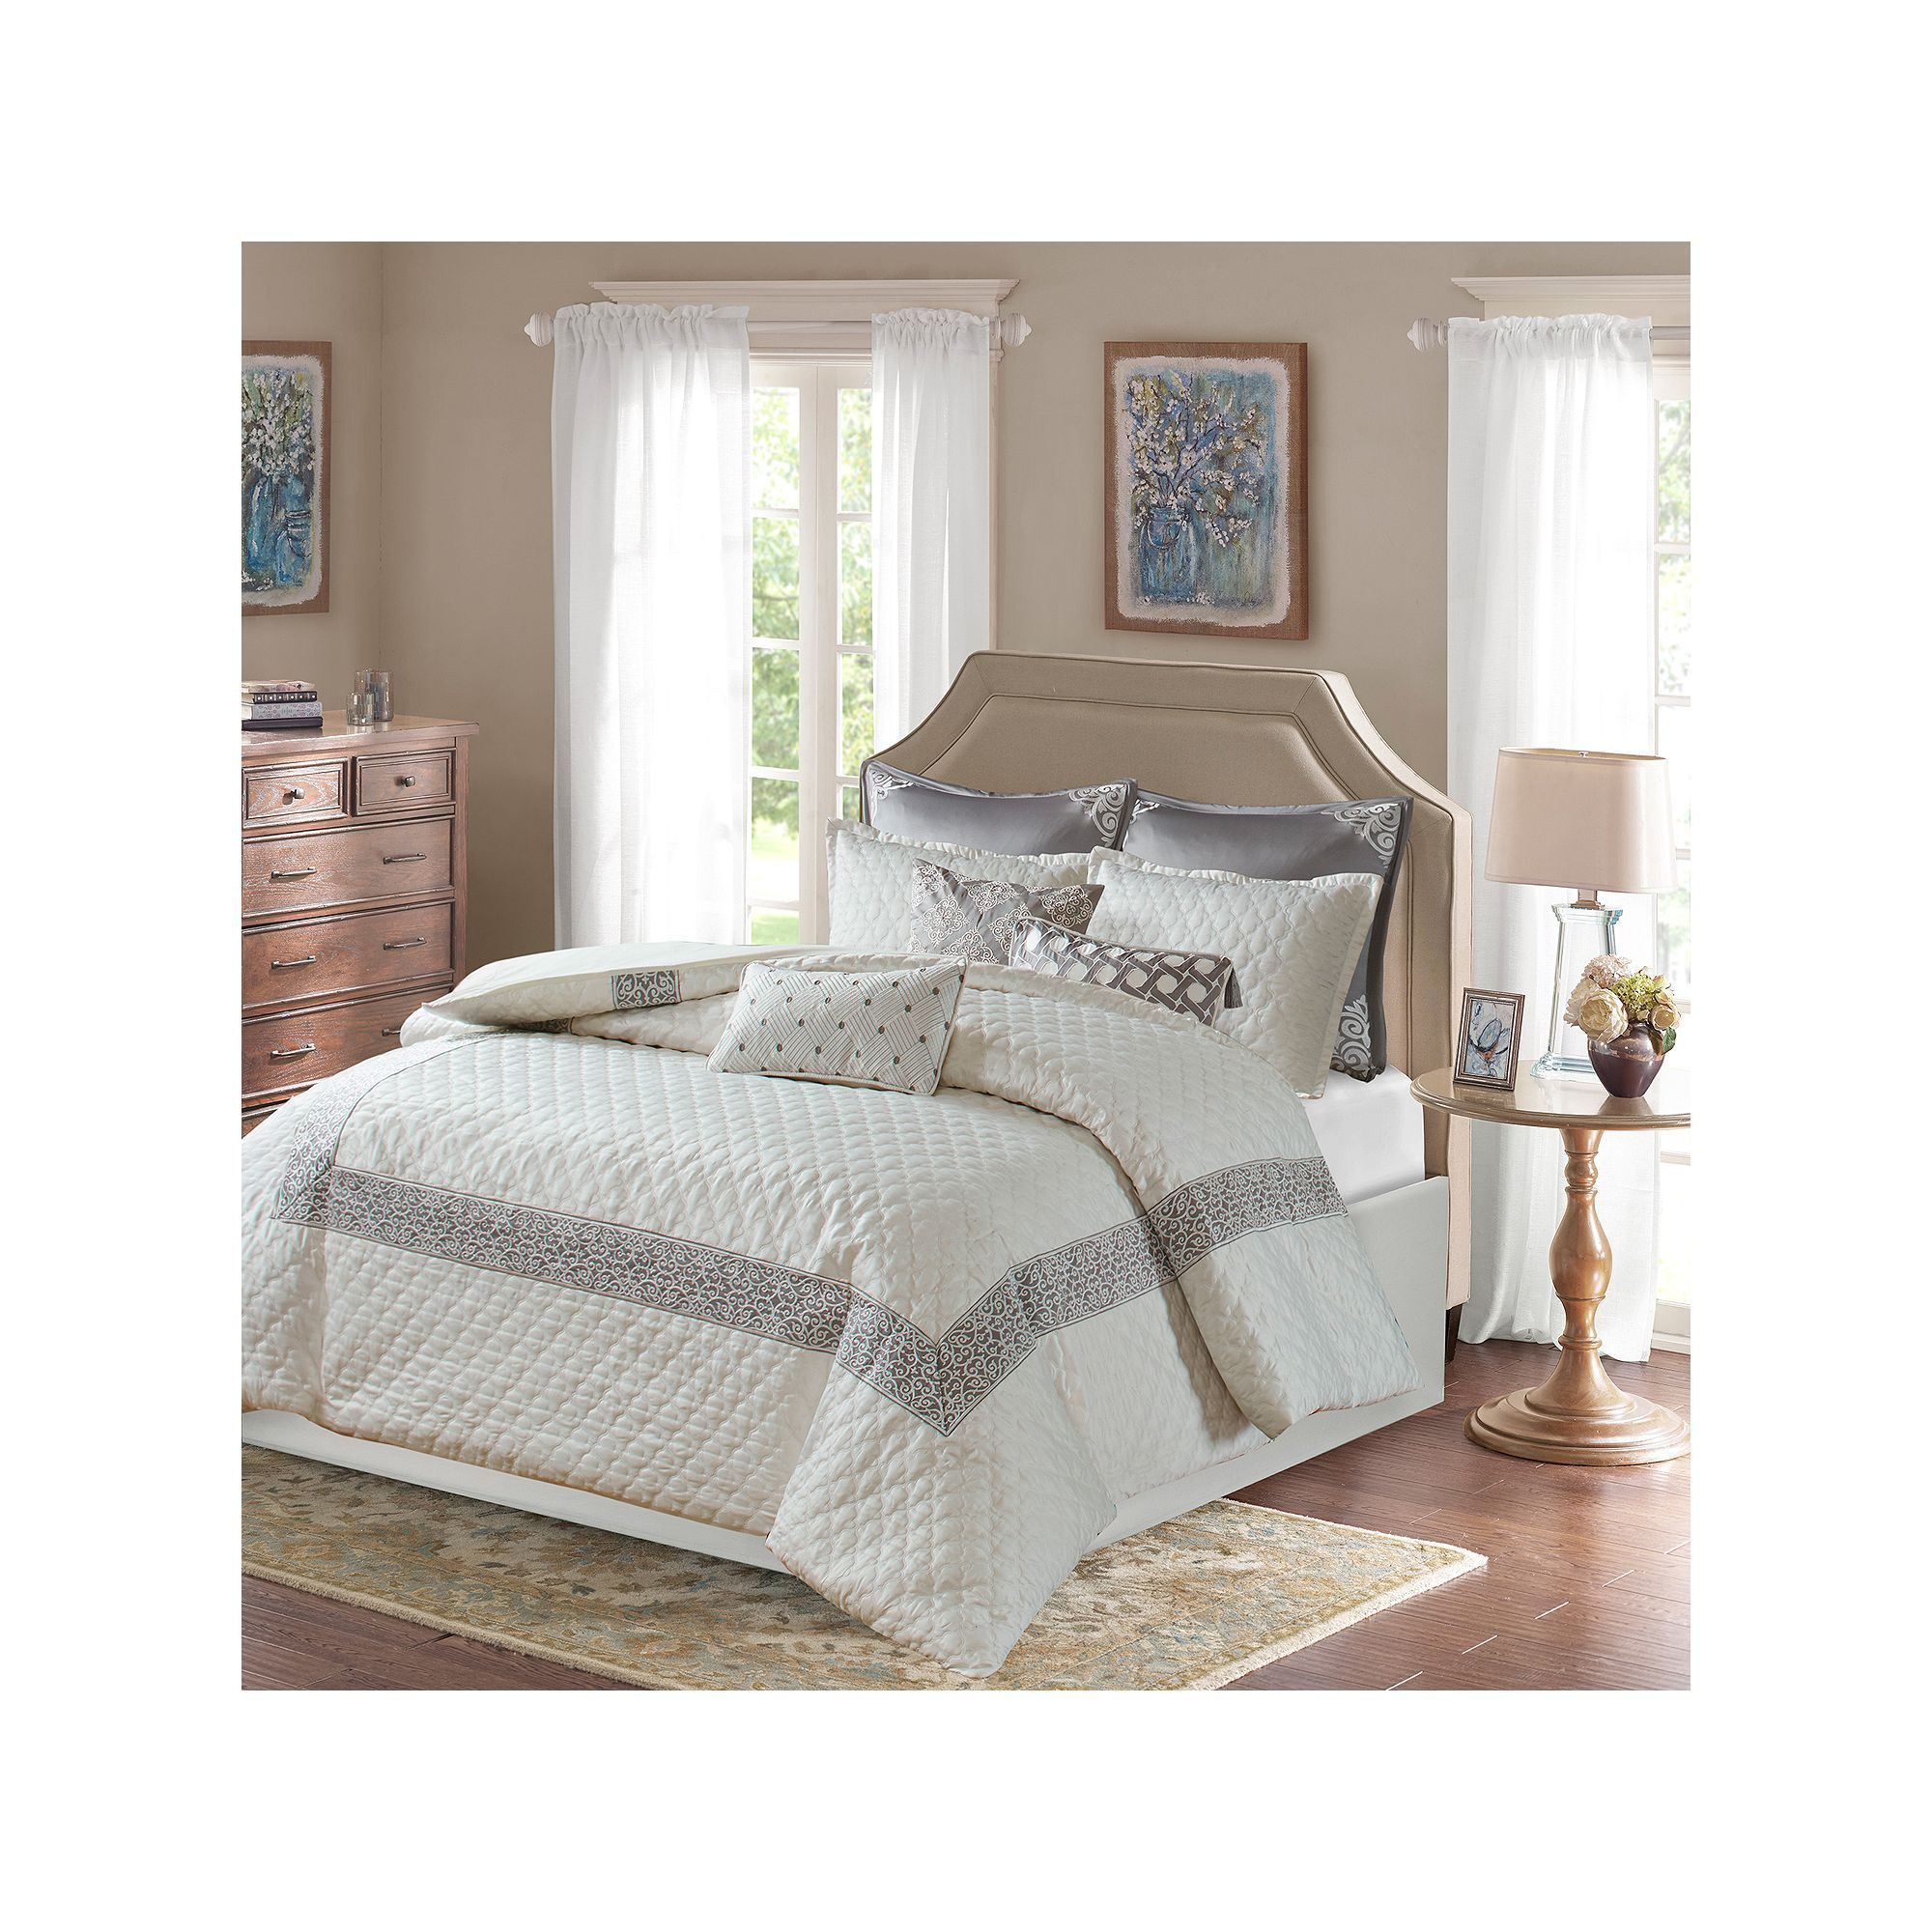 embroidered collection bedding design frame khloe intelligent comforter piece metallic printed brilliant silver popular for hotel intended aqua created